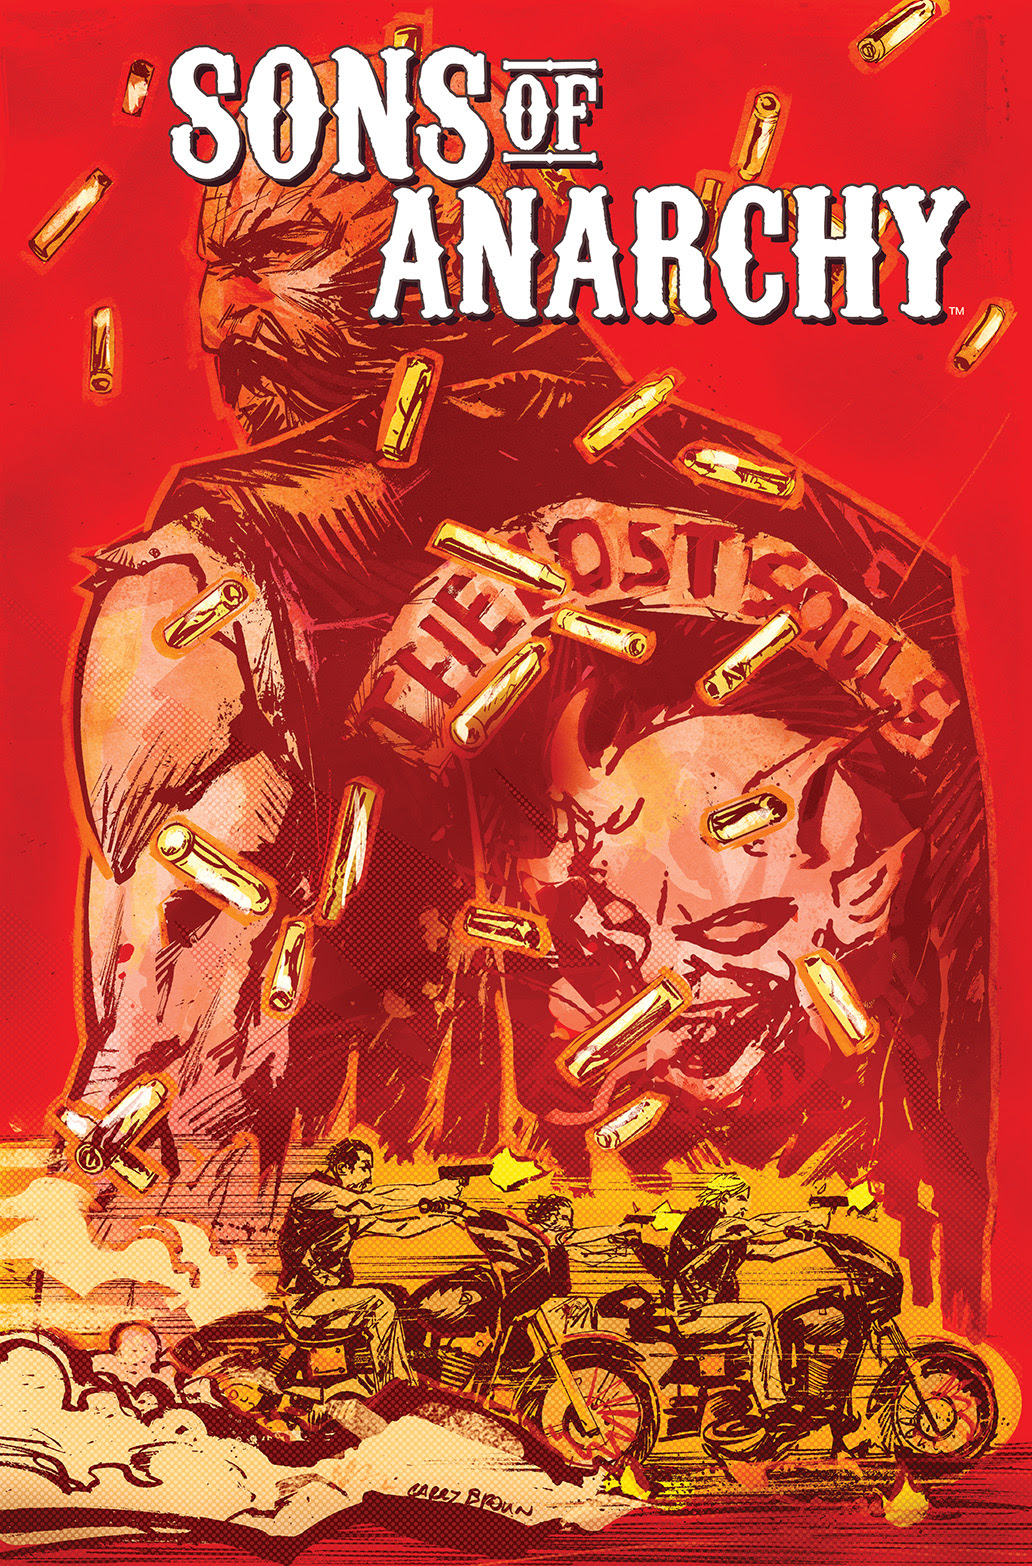 SONS OF ANARCHY #13 Cover by Garry Brown